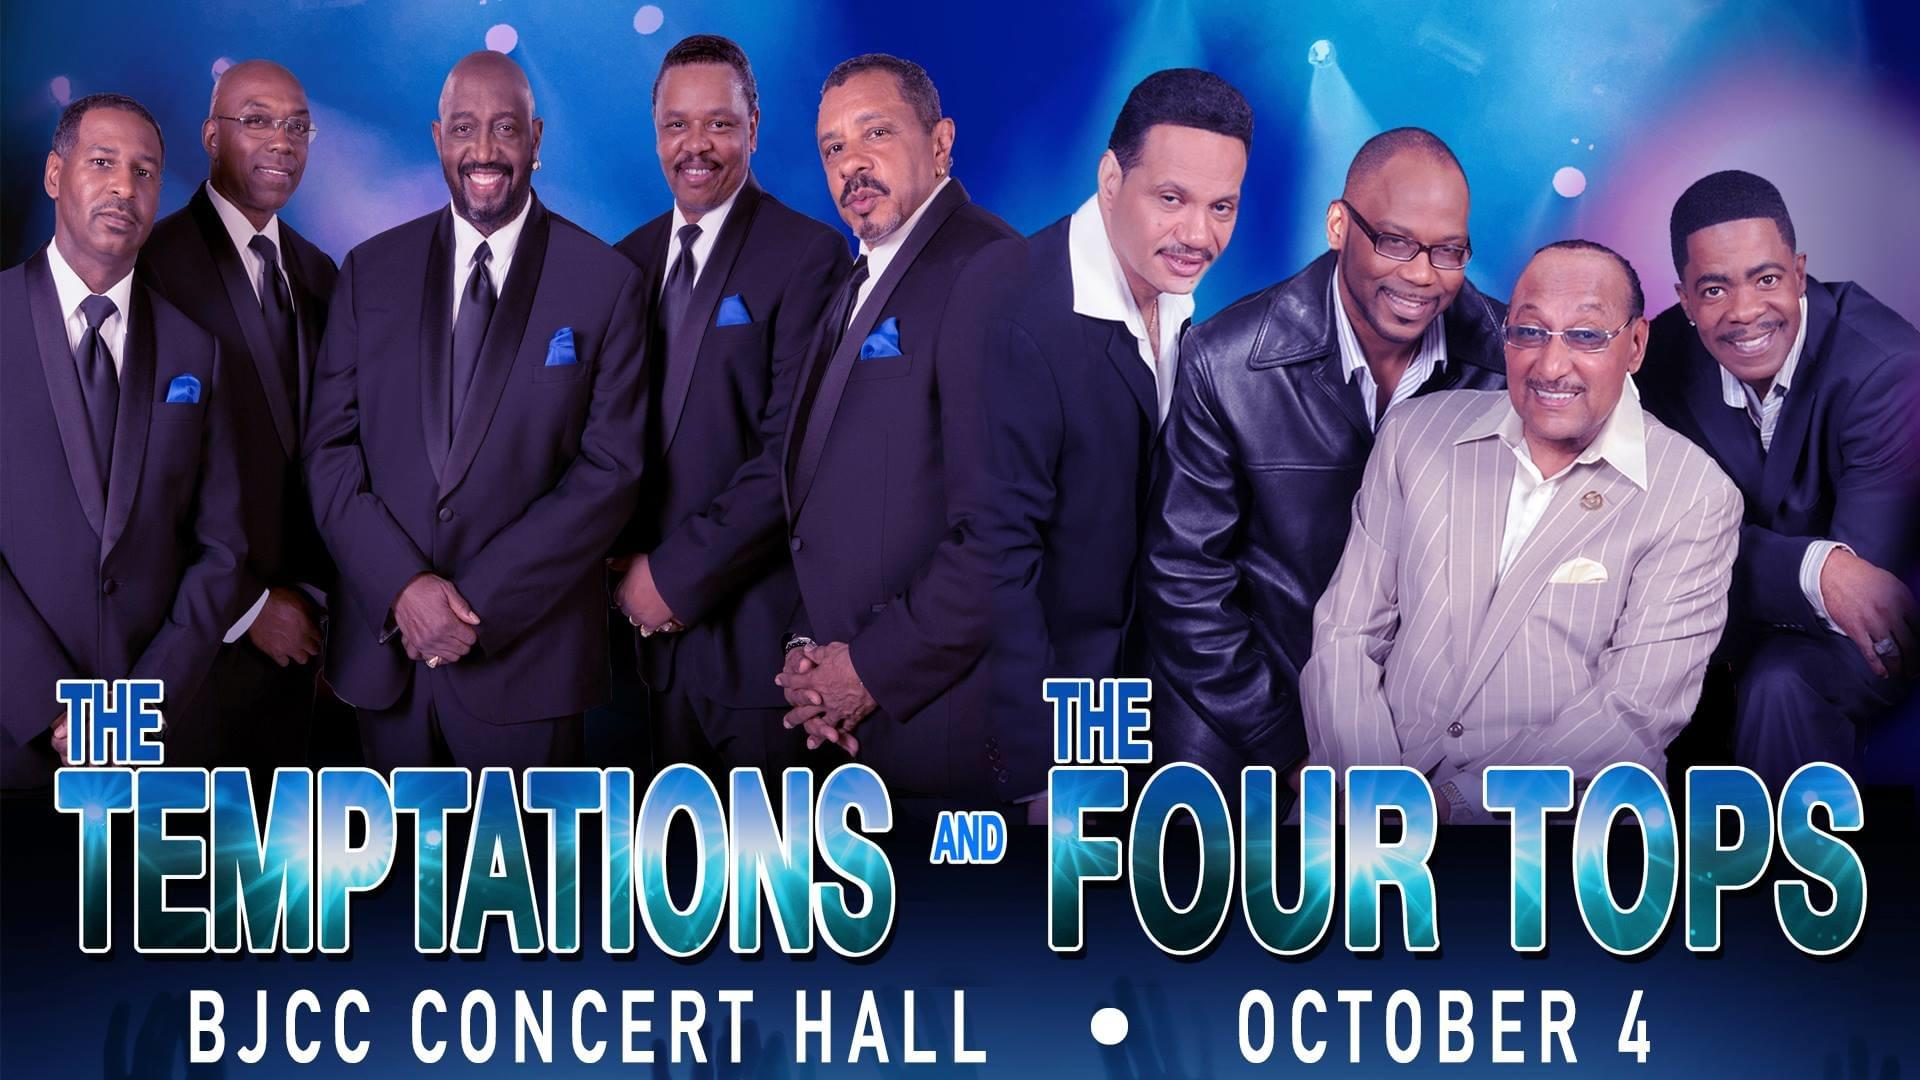 Win Tickets To The Temptations and The Four Tops